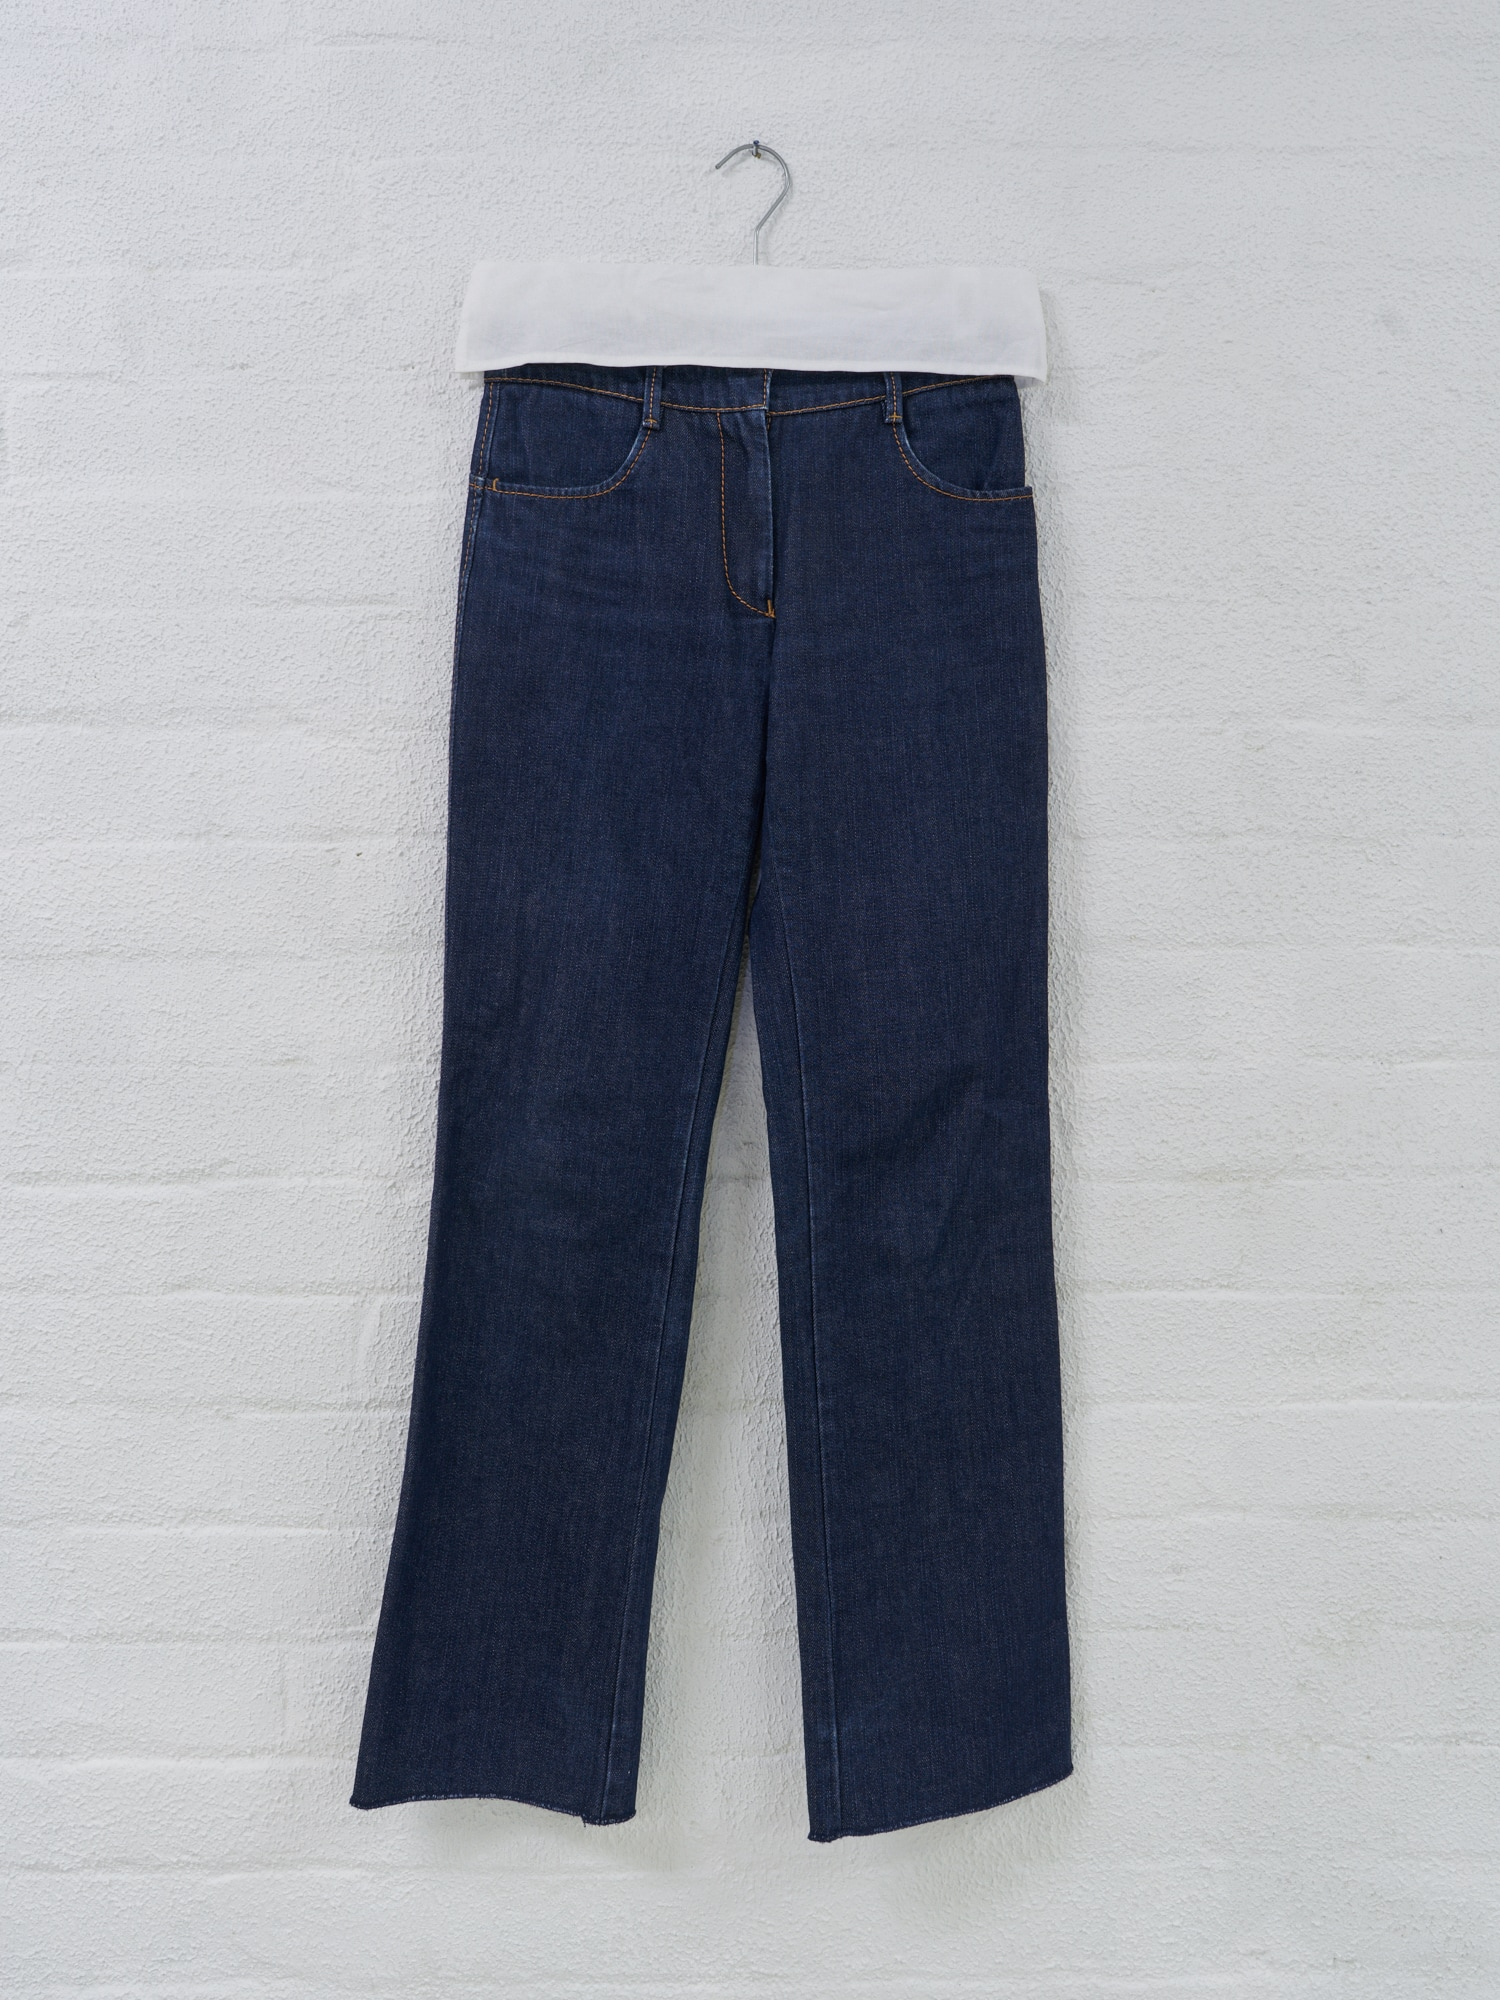 Filter Store,  Maison Martin Margiela fabric covered clip hanger,  mid 2000s. Metal, plastic, cotton. Pictured here hanging some jeans.